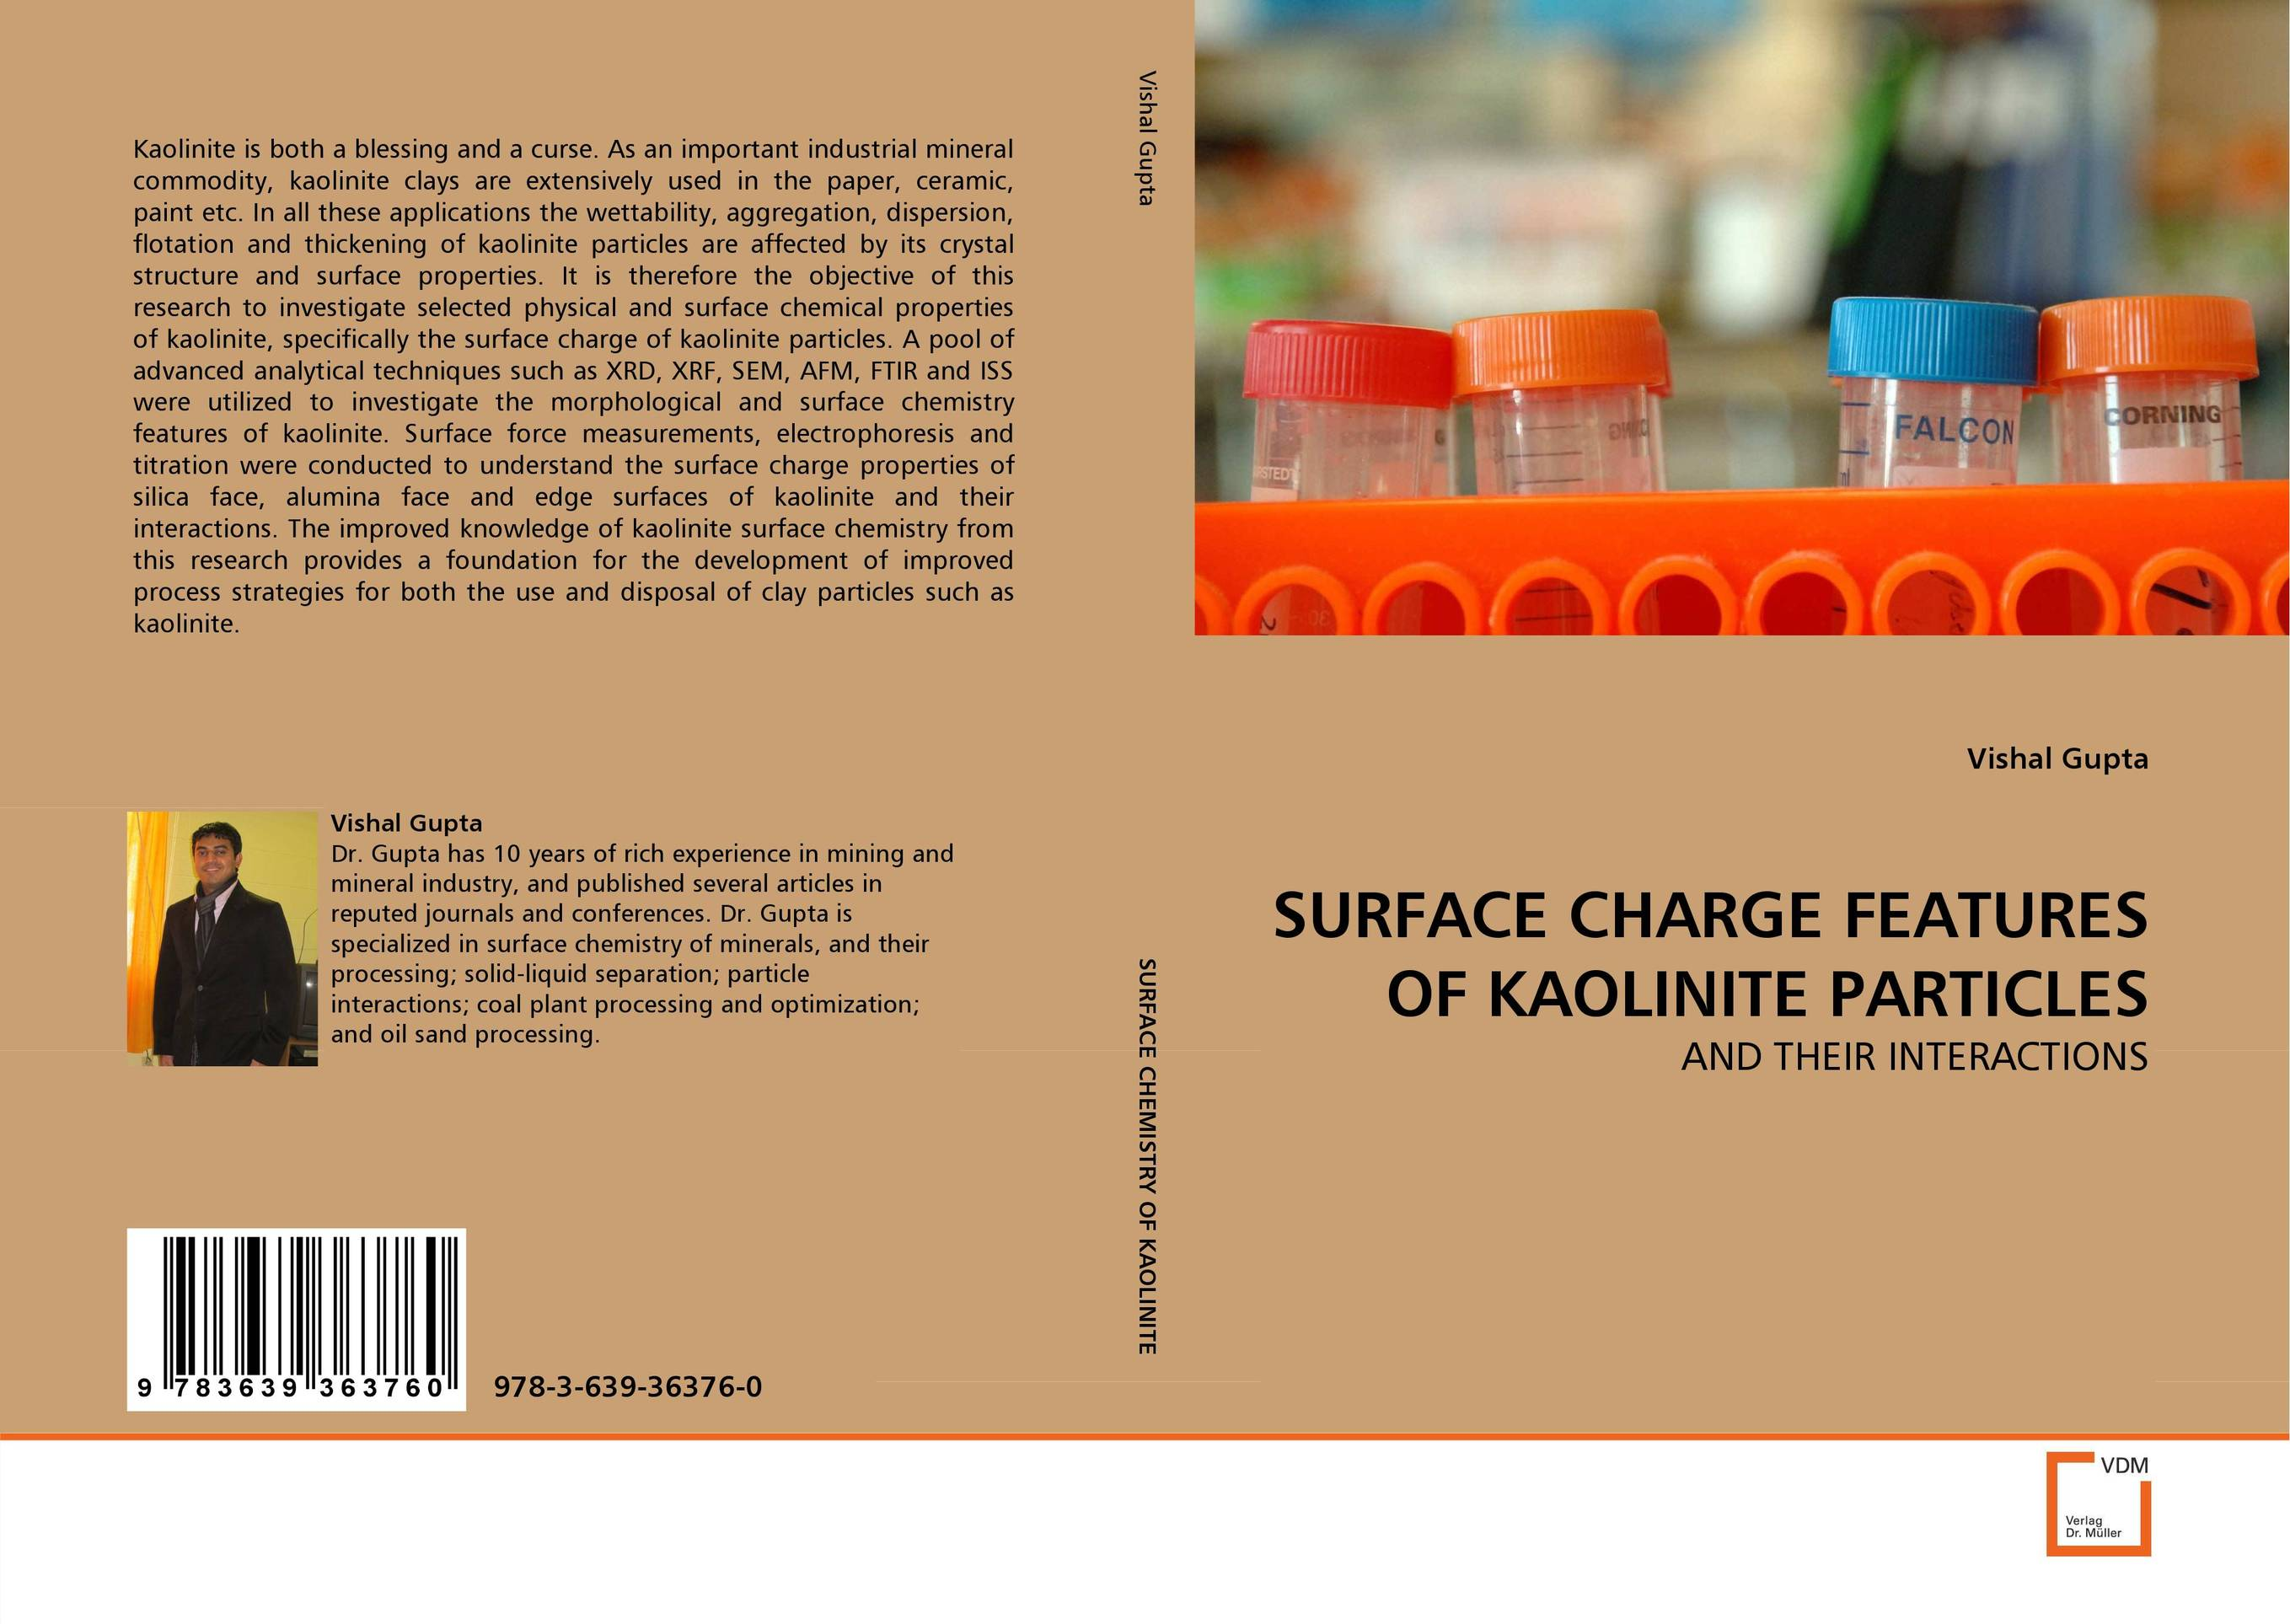 SURFACE CHARGE FEATURES OF KAOLINITE PARTICLES kumiko nakanishi japanese grammar practice particles wa and ga complex case particles and adverbial particles практическая граматика японского языка продвинутого уровня частицы